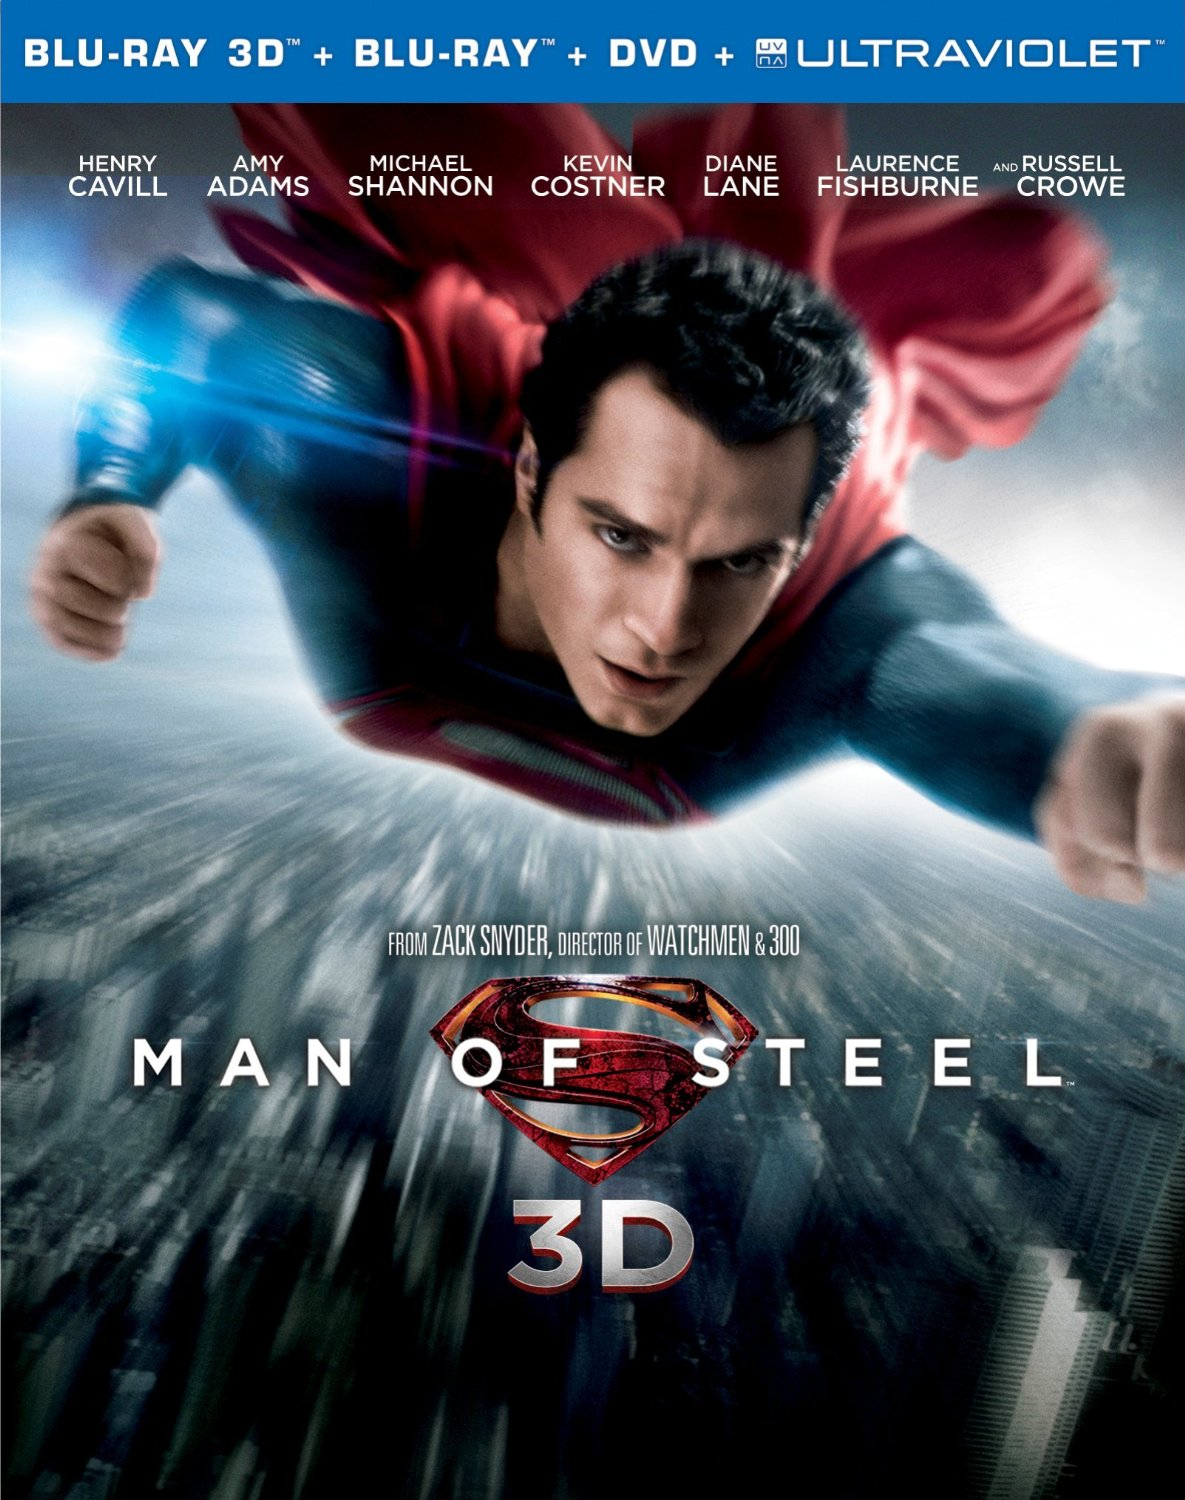 Man of Steel Blu-ray 3D